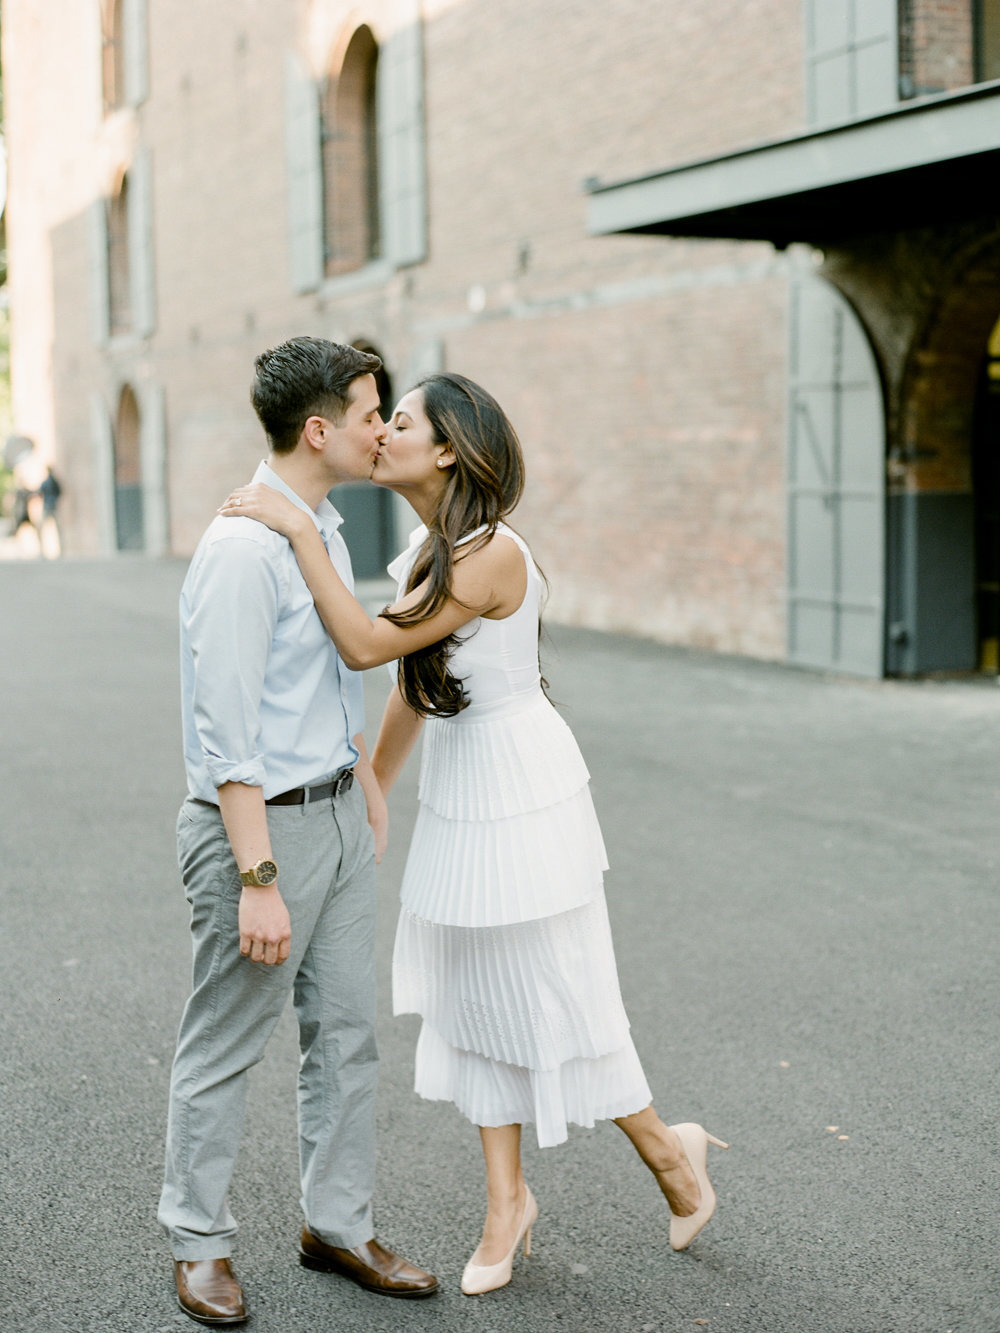 mary-dougherty-engagement-dumbo-photography-nyc-brooklyn04